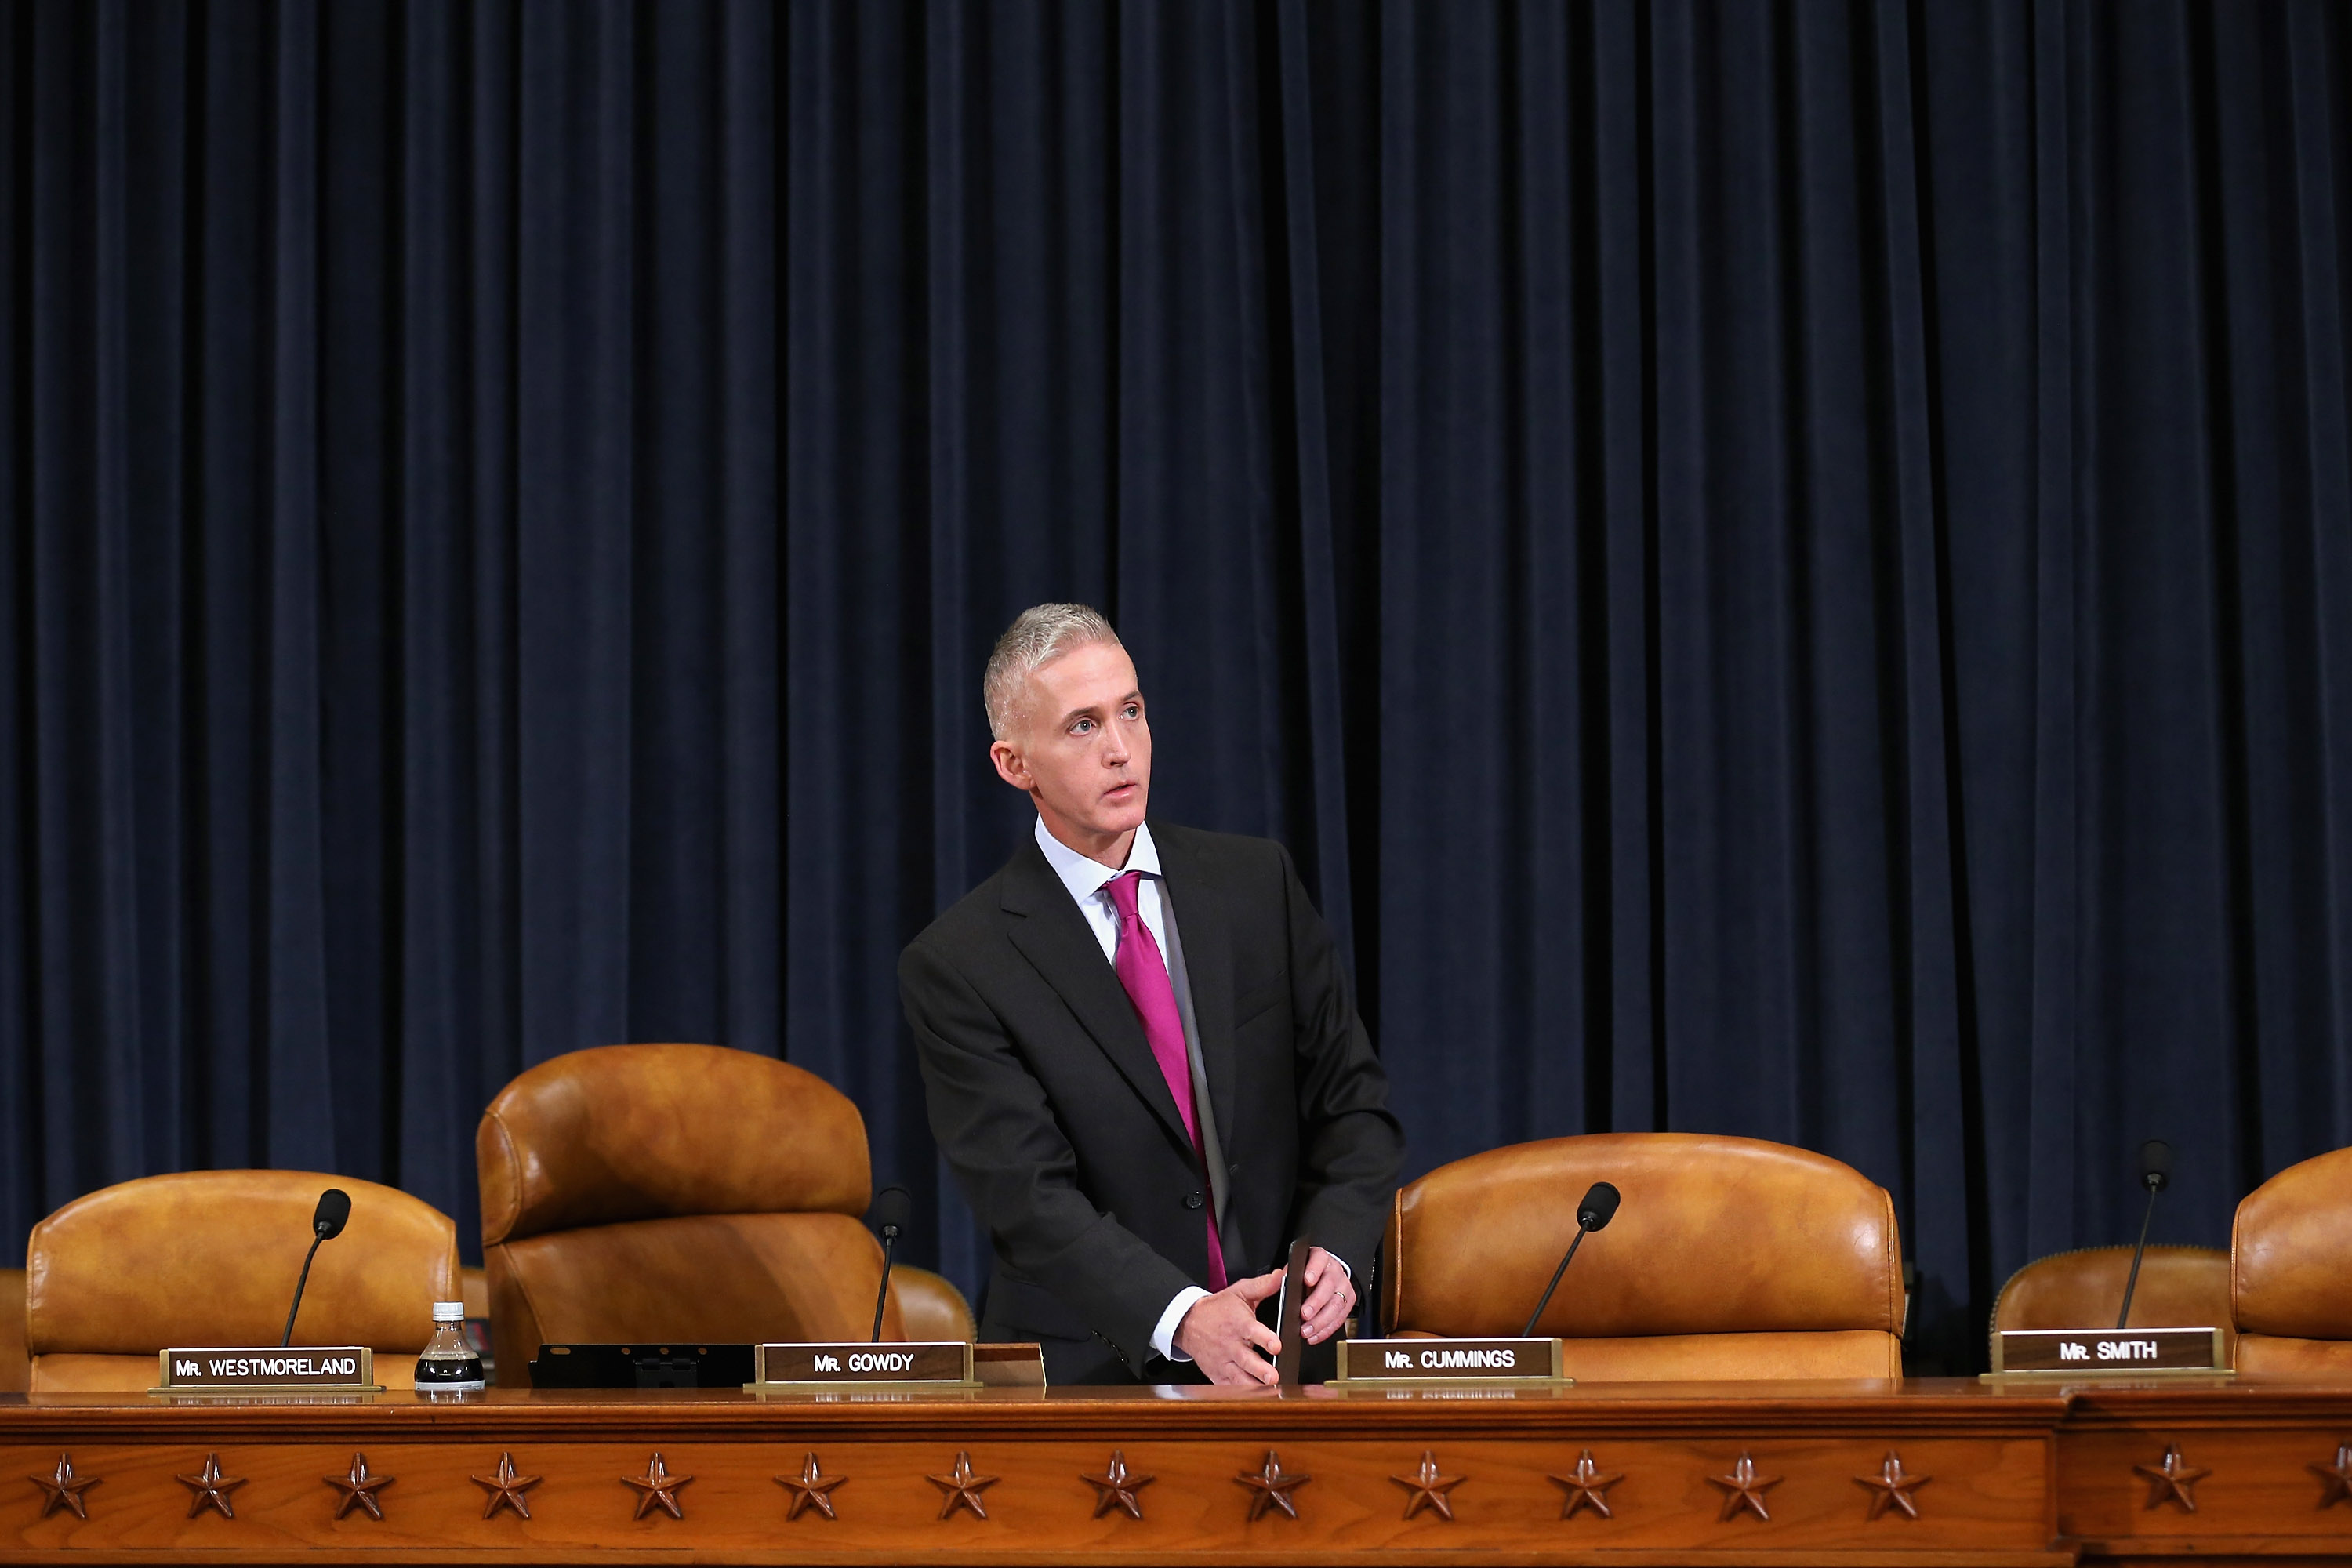 House Select Committee on Benghazi Chairman Rep. Trey Gowdy (R-SC) arrives for a hearing where Democratic presidential candidate and former Secretary of State Hillary Clinton testified October 22, 2015 on Capitol Hill.